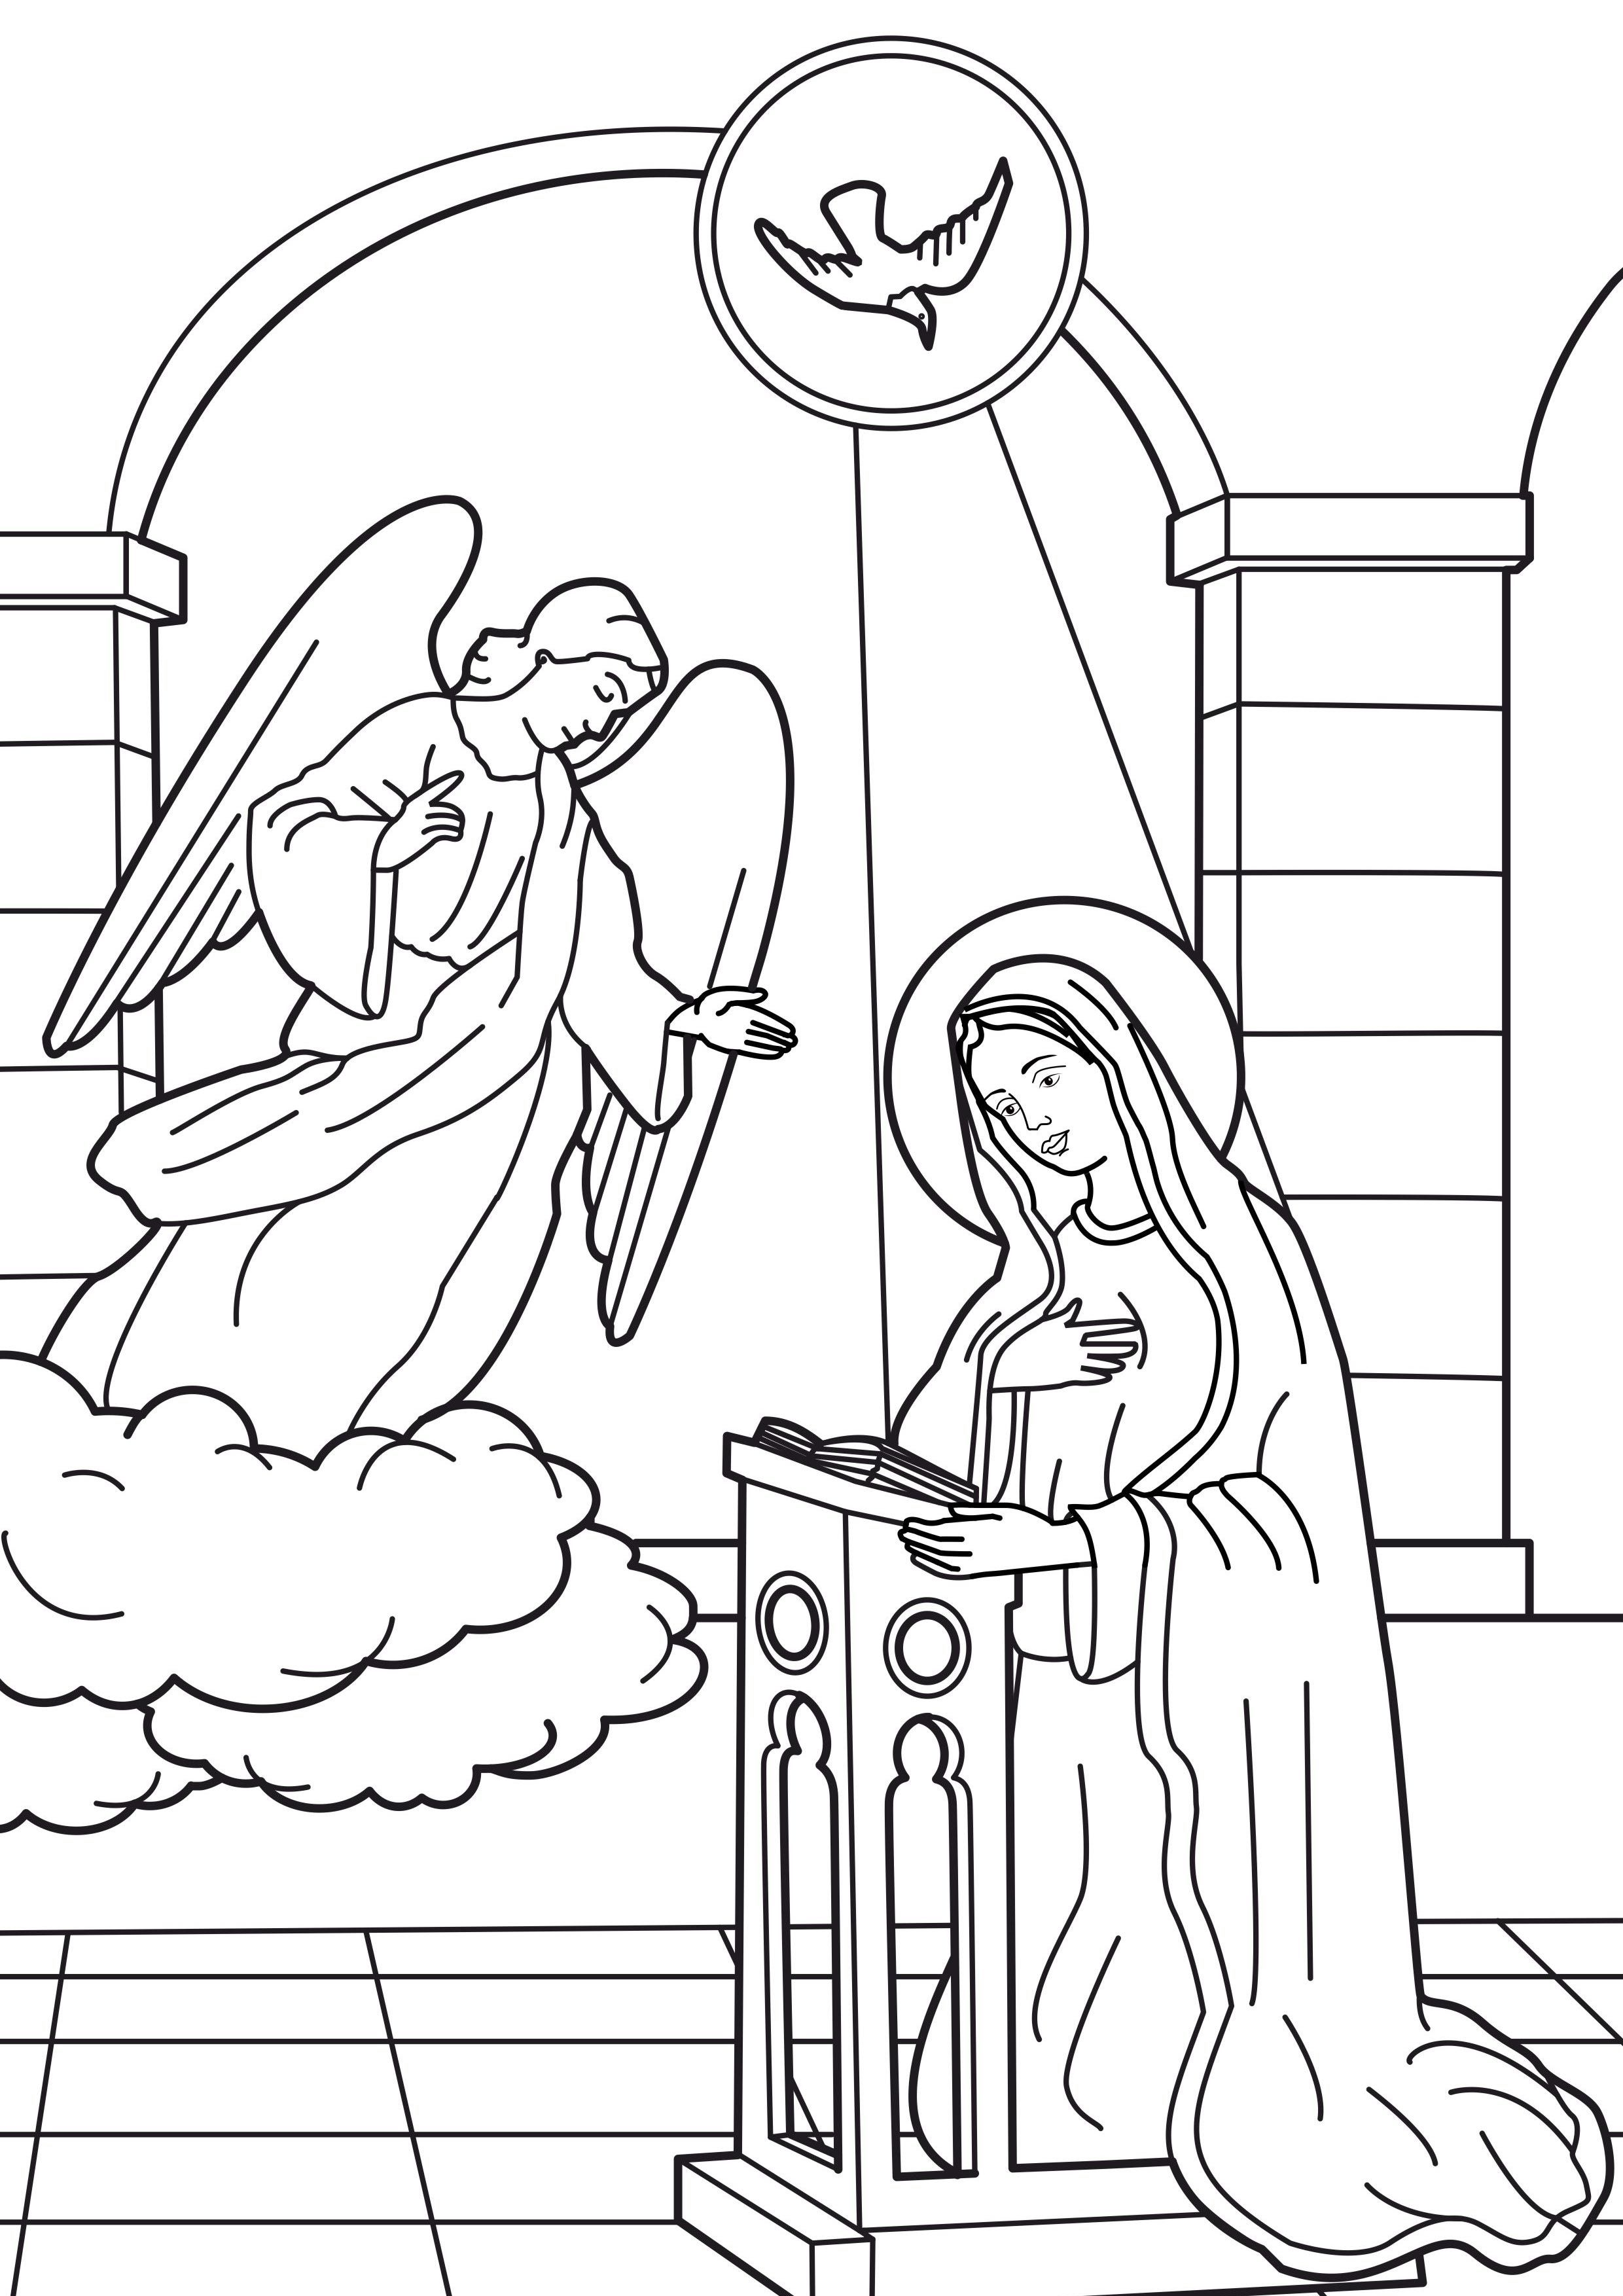 Virgin Mary Coloring Pages Nativity Coloring Pages Sunday School Coloring Pages Catholic Coloring